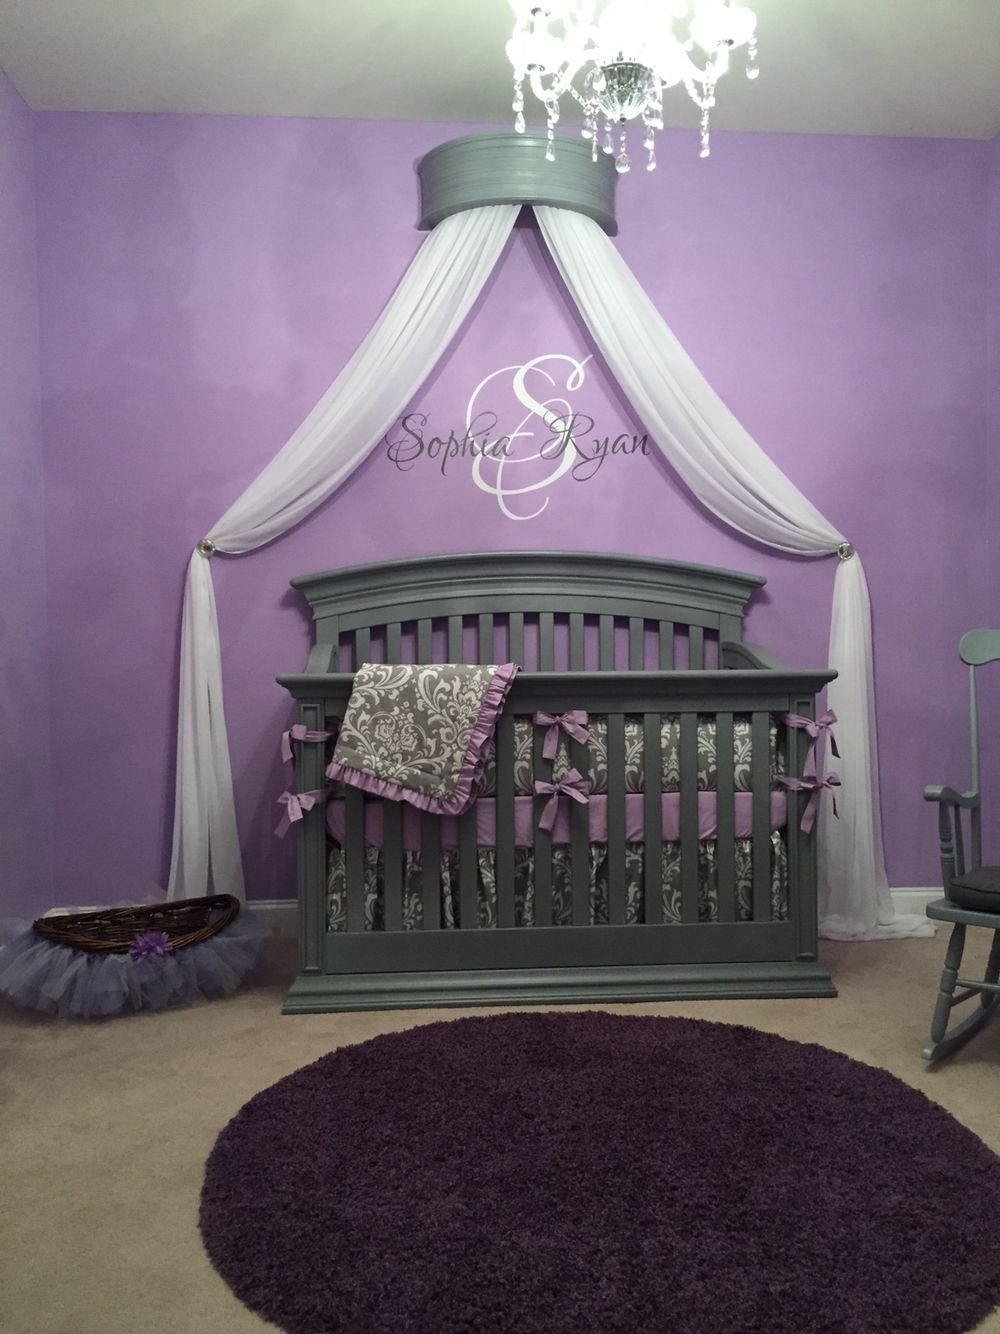 before starting to decorate, check out these awesome purple decor